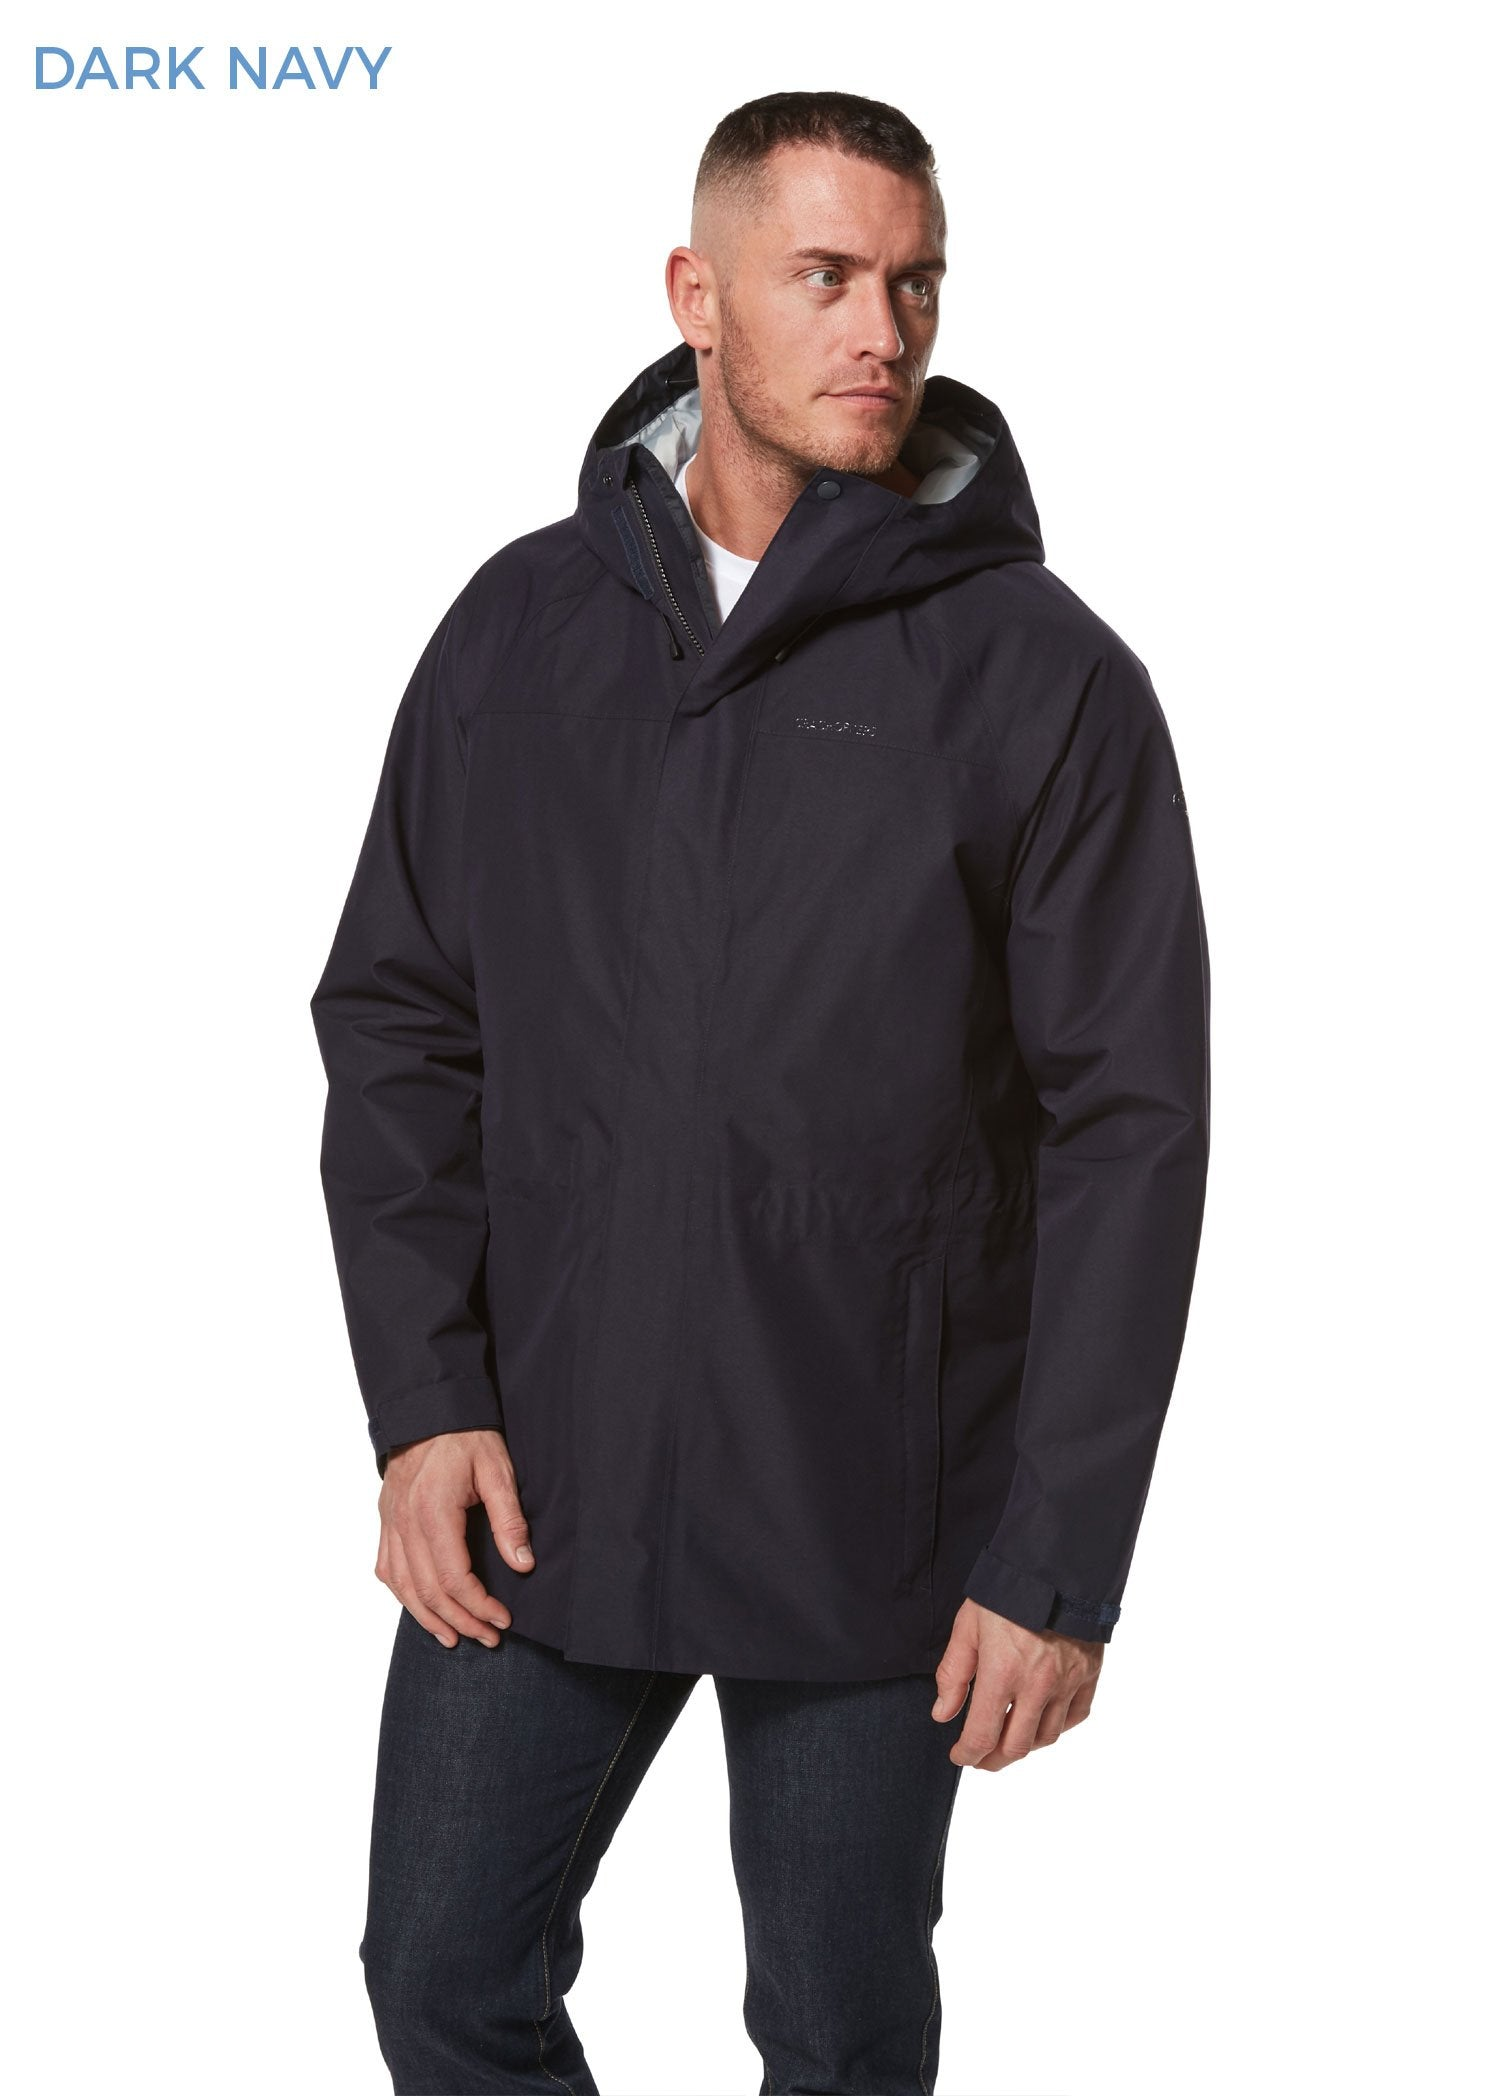 Dark Navy Corran Gore-Tex Waterproof Jacket by Craghoppers